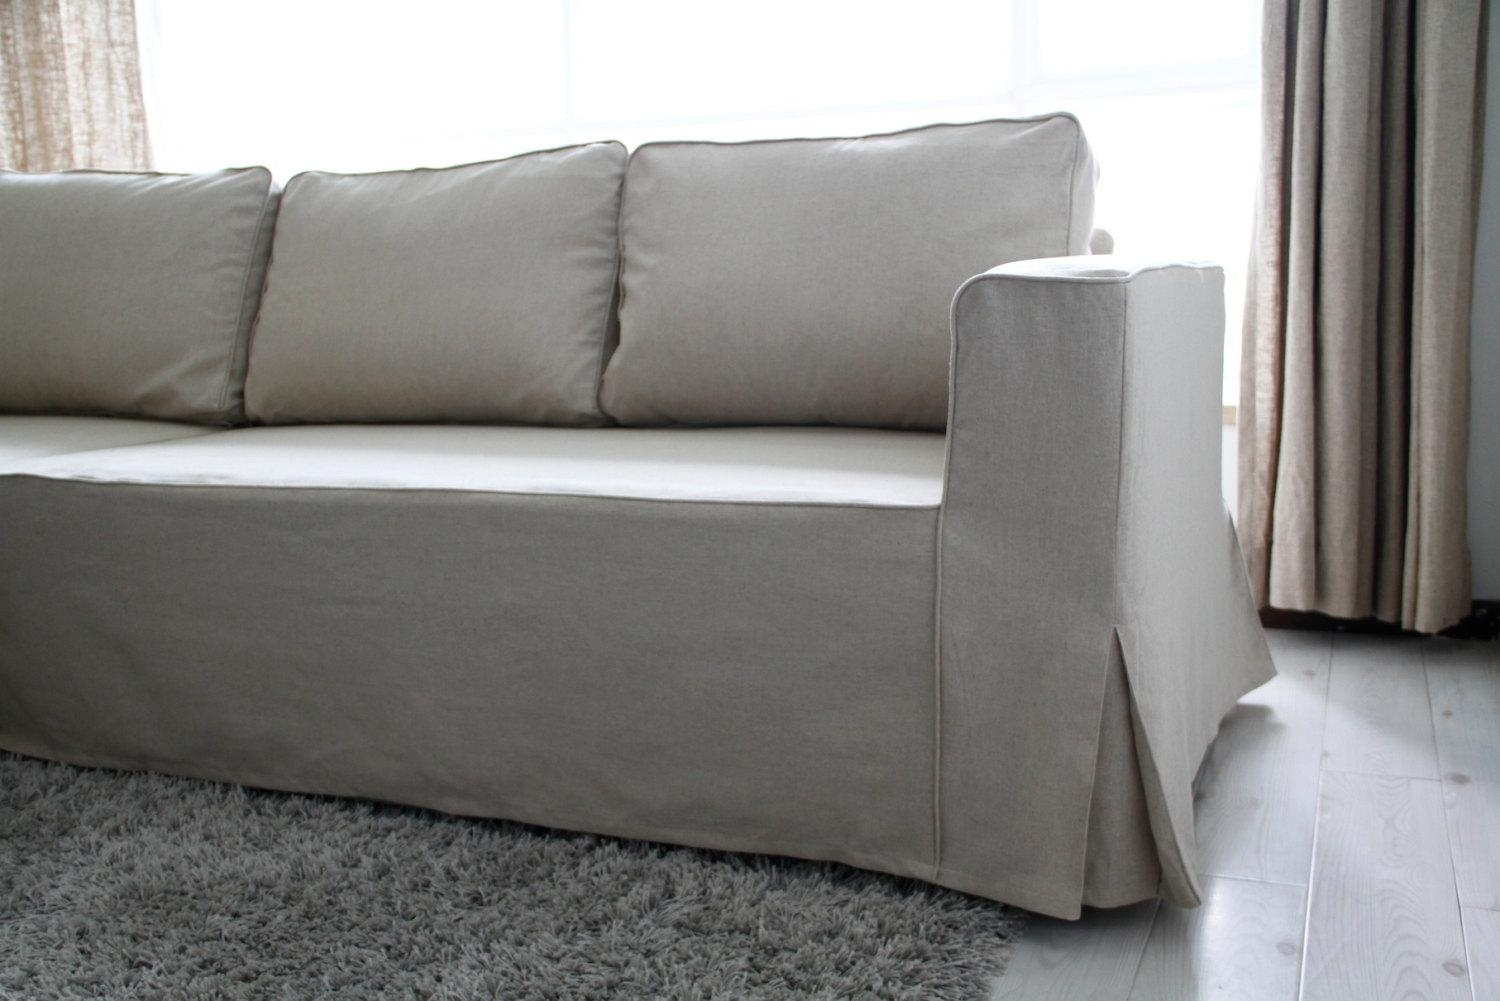 Custom Ikea Manstad Sofa Bed Cover Loose Fit Style In Liege With Regard To Manstad Sofa Bed (View 9 of 20)